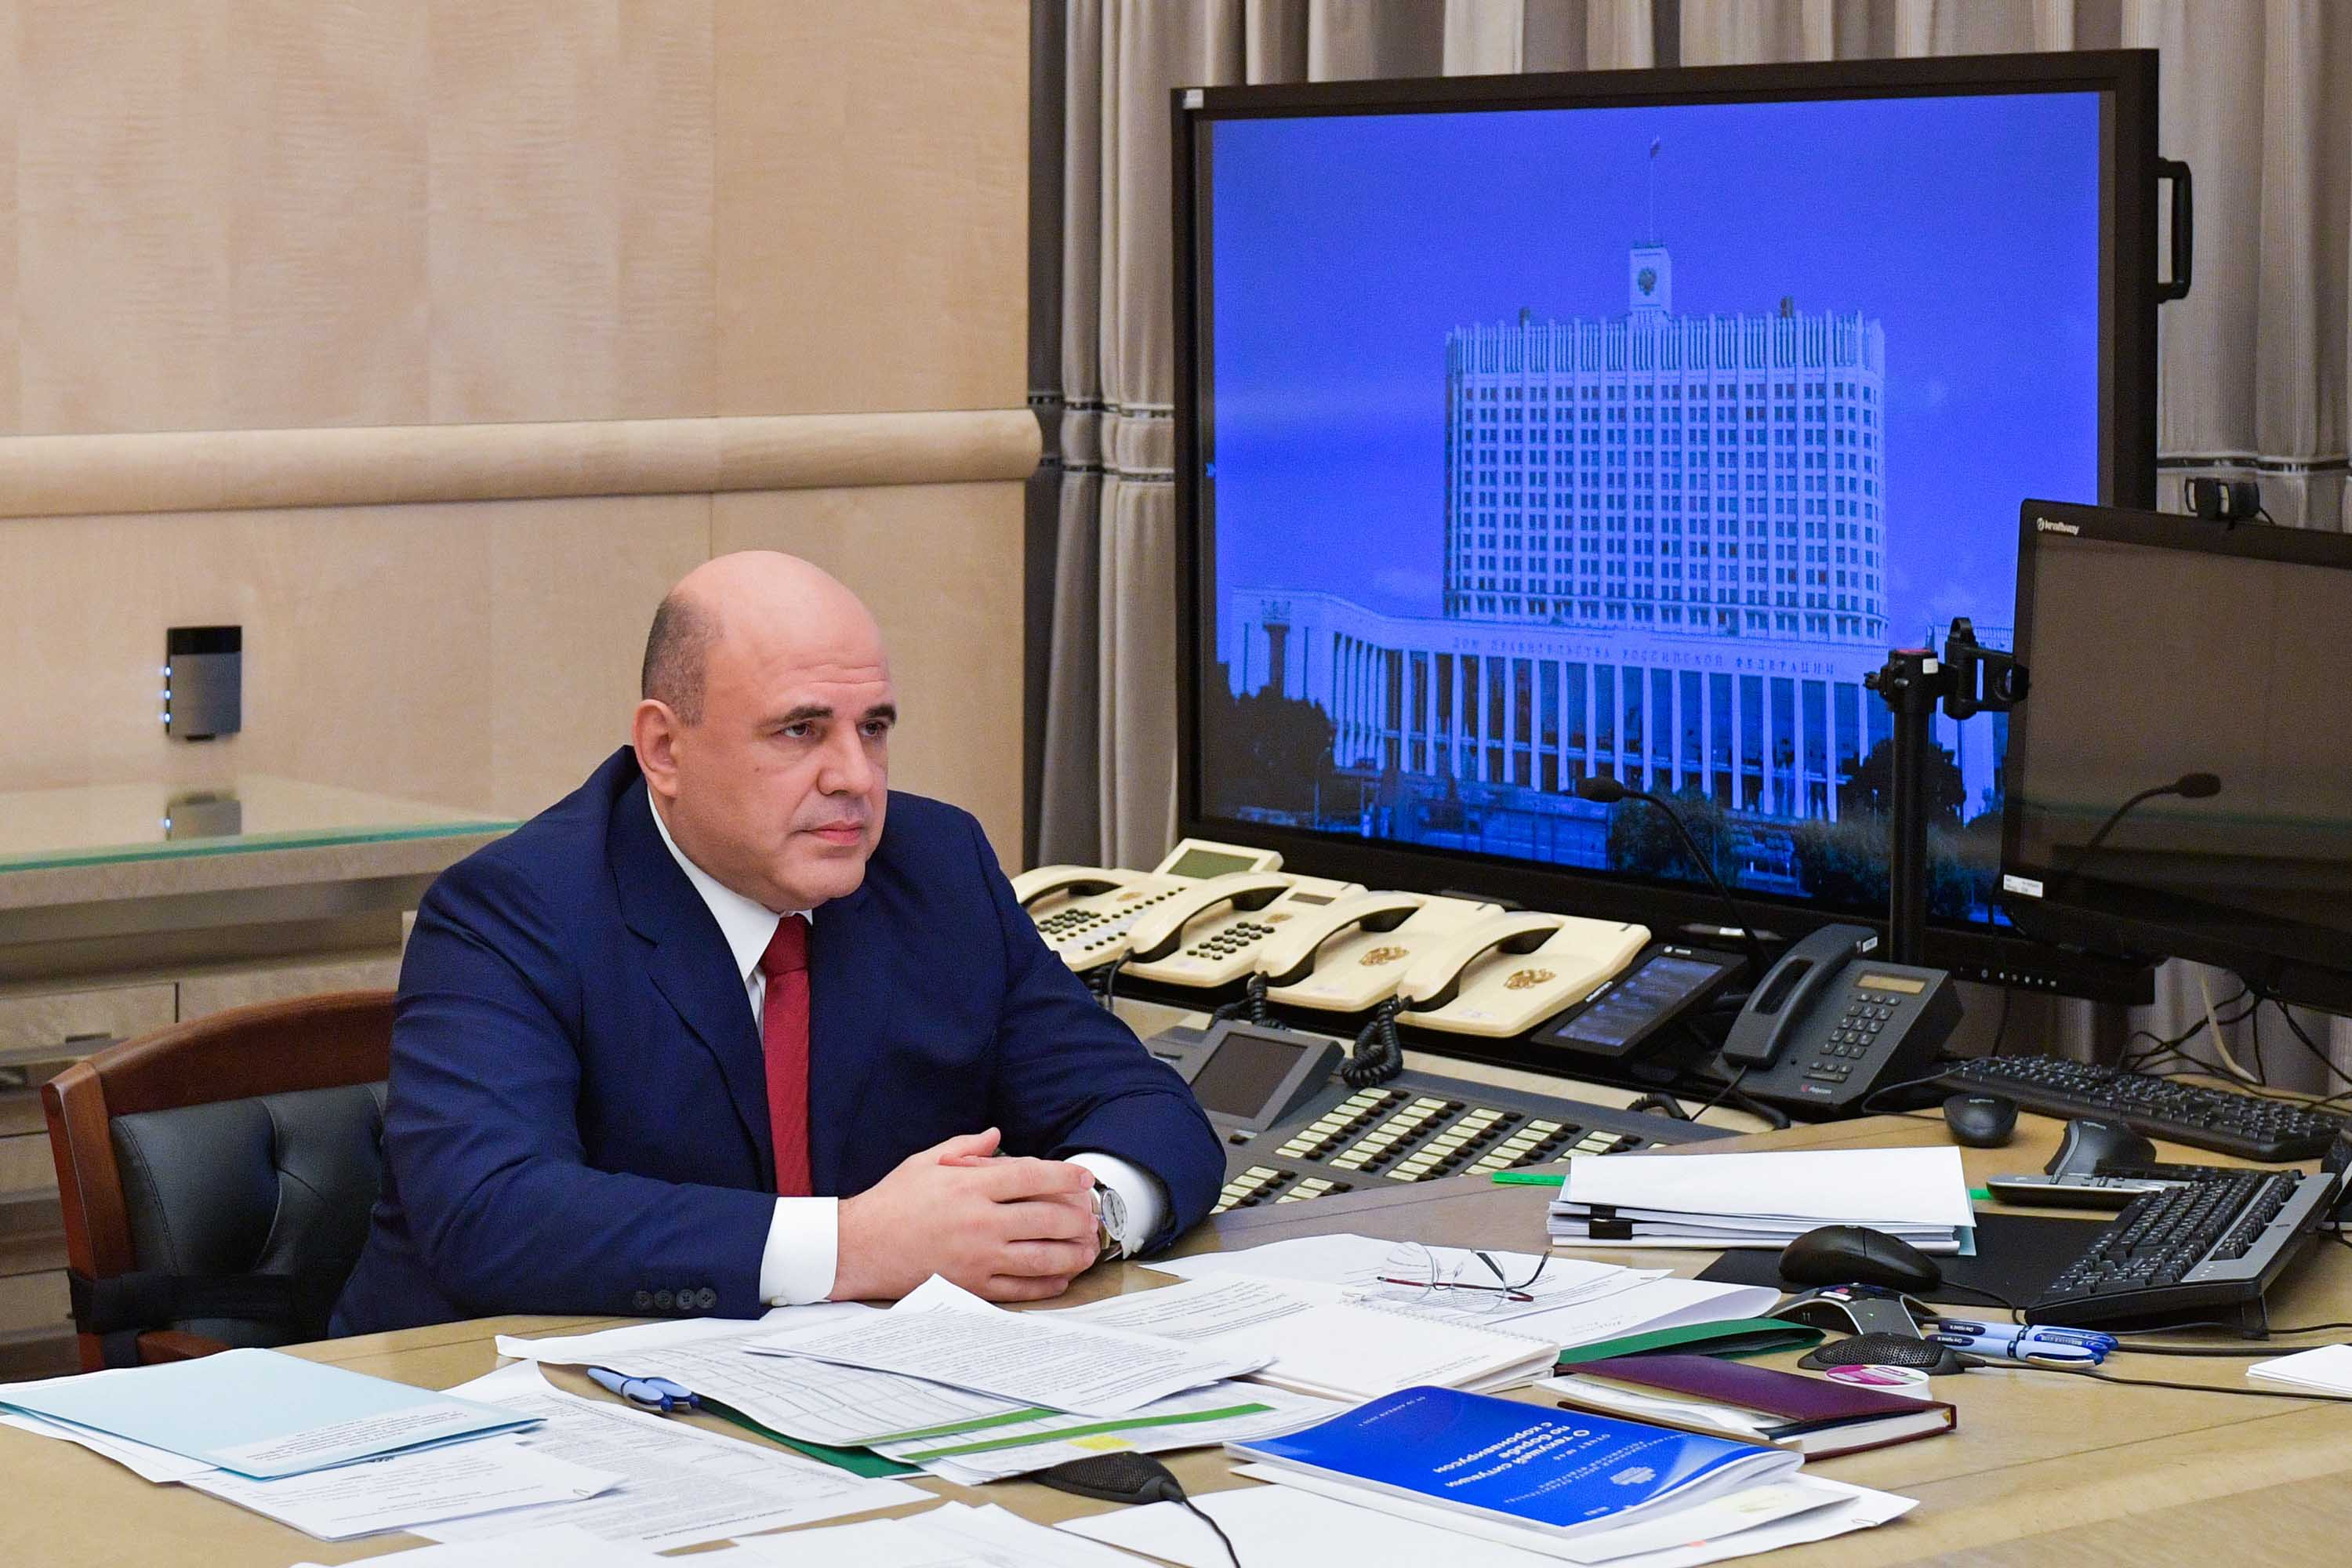 Russia's Prime Minister Mikhail Mishustin chairs a meeting via video link in Moscow on April 29.